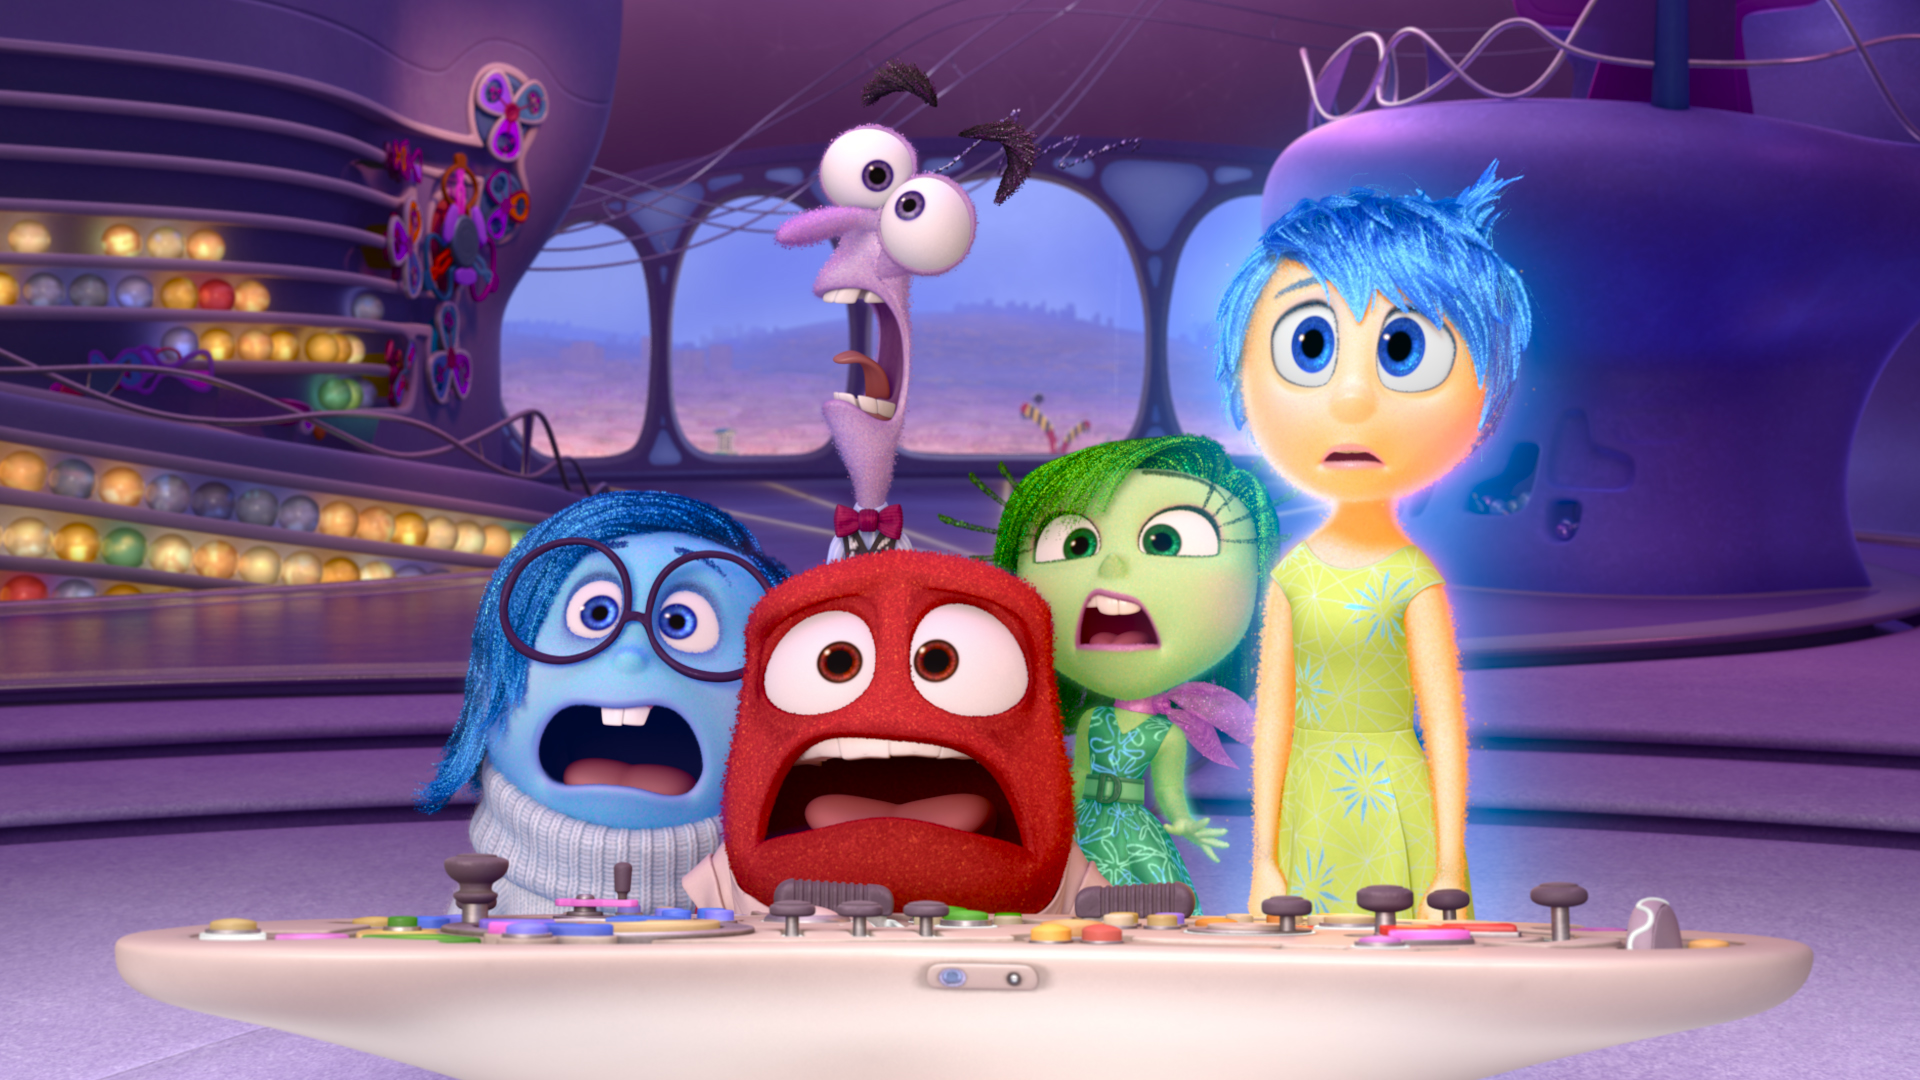 'Inside Out' Now Available on Blu-ray & DVD